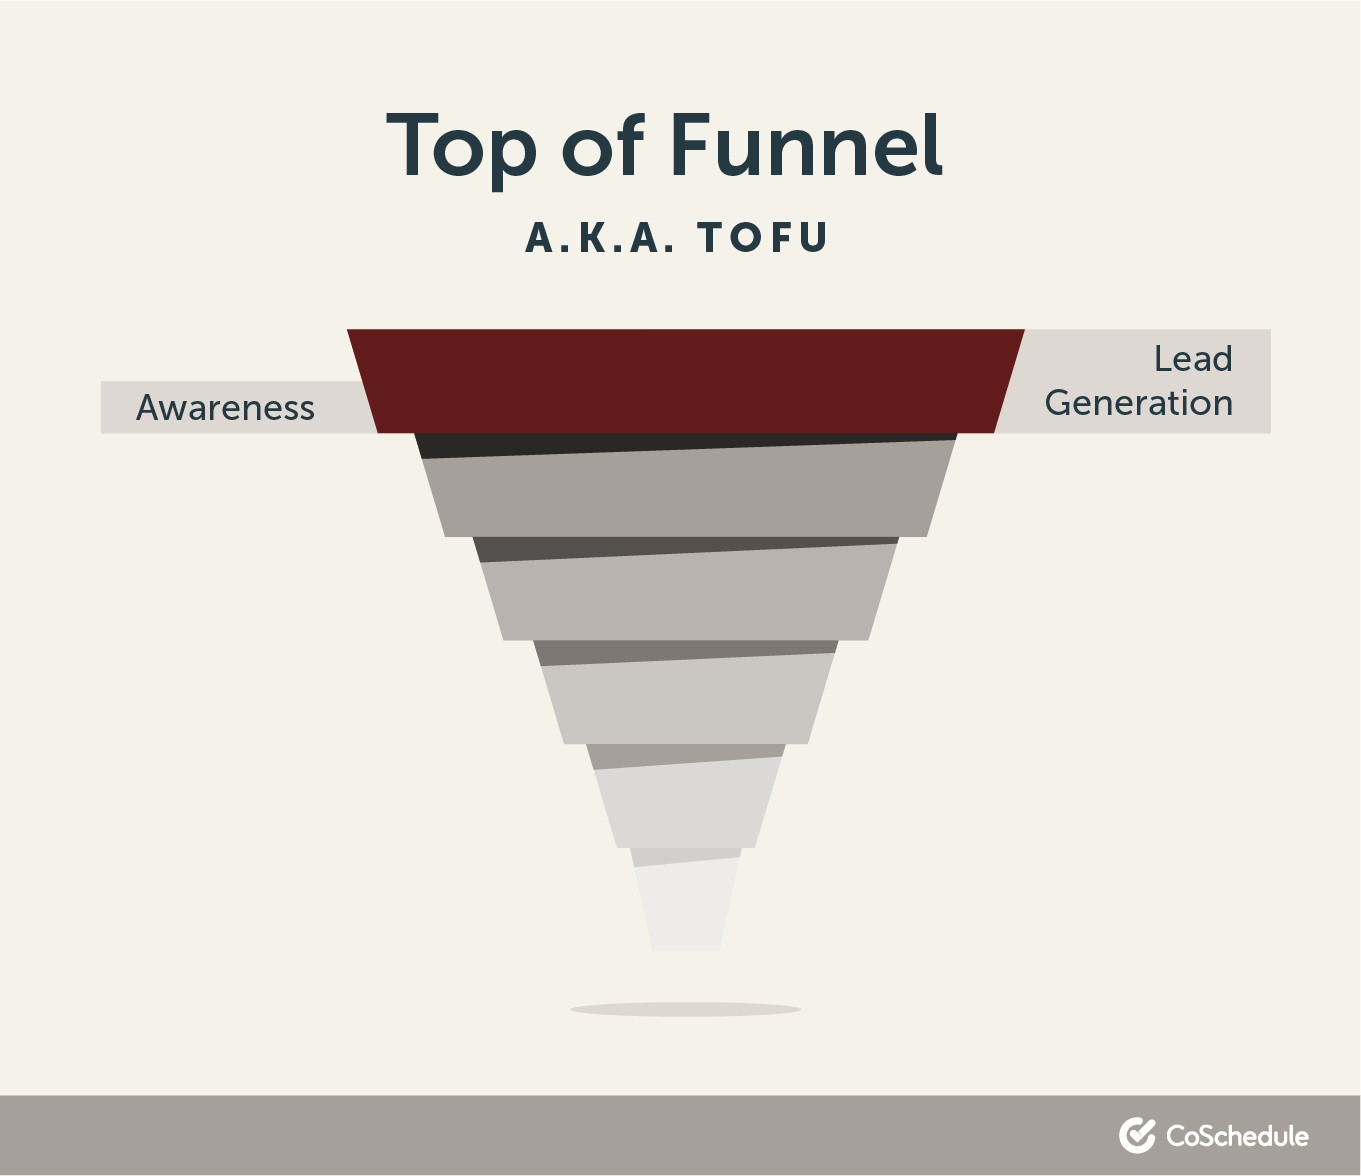 Top of Funnel illustration